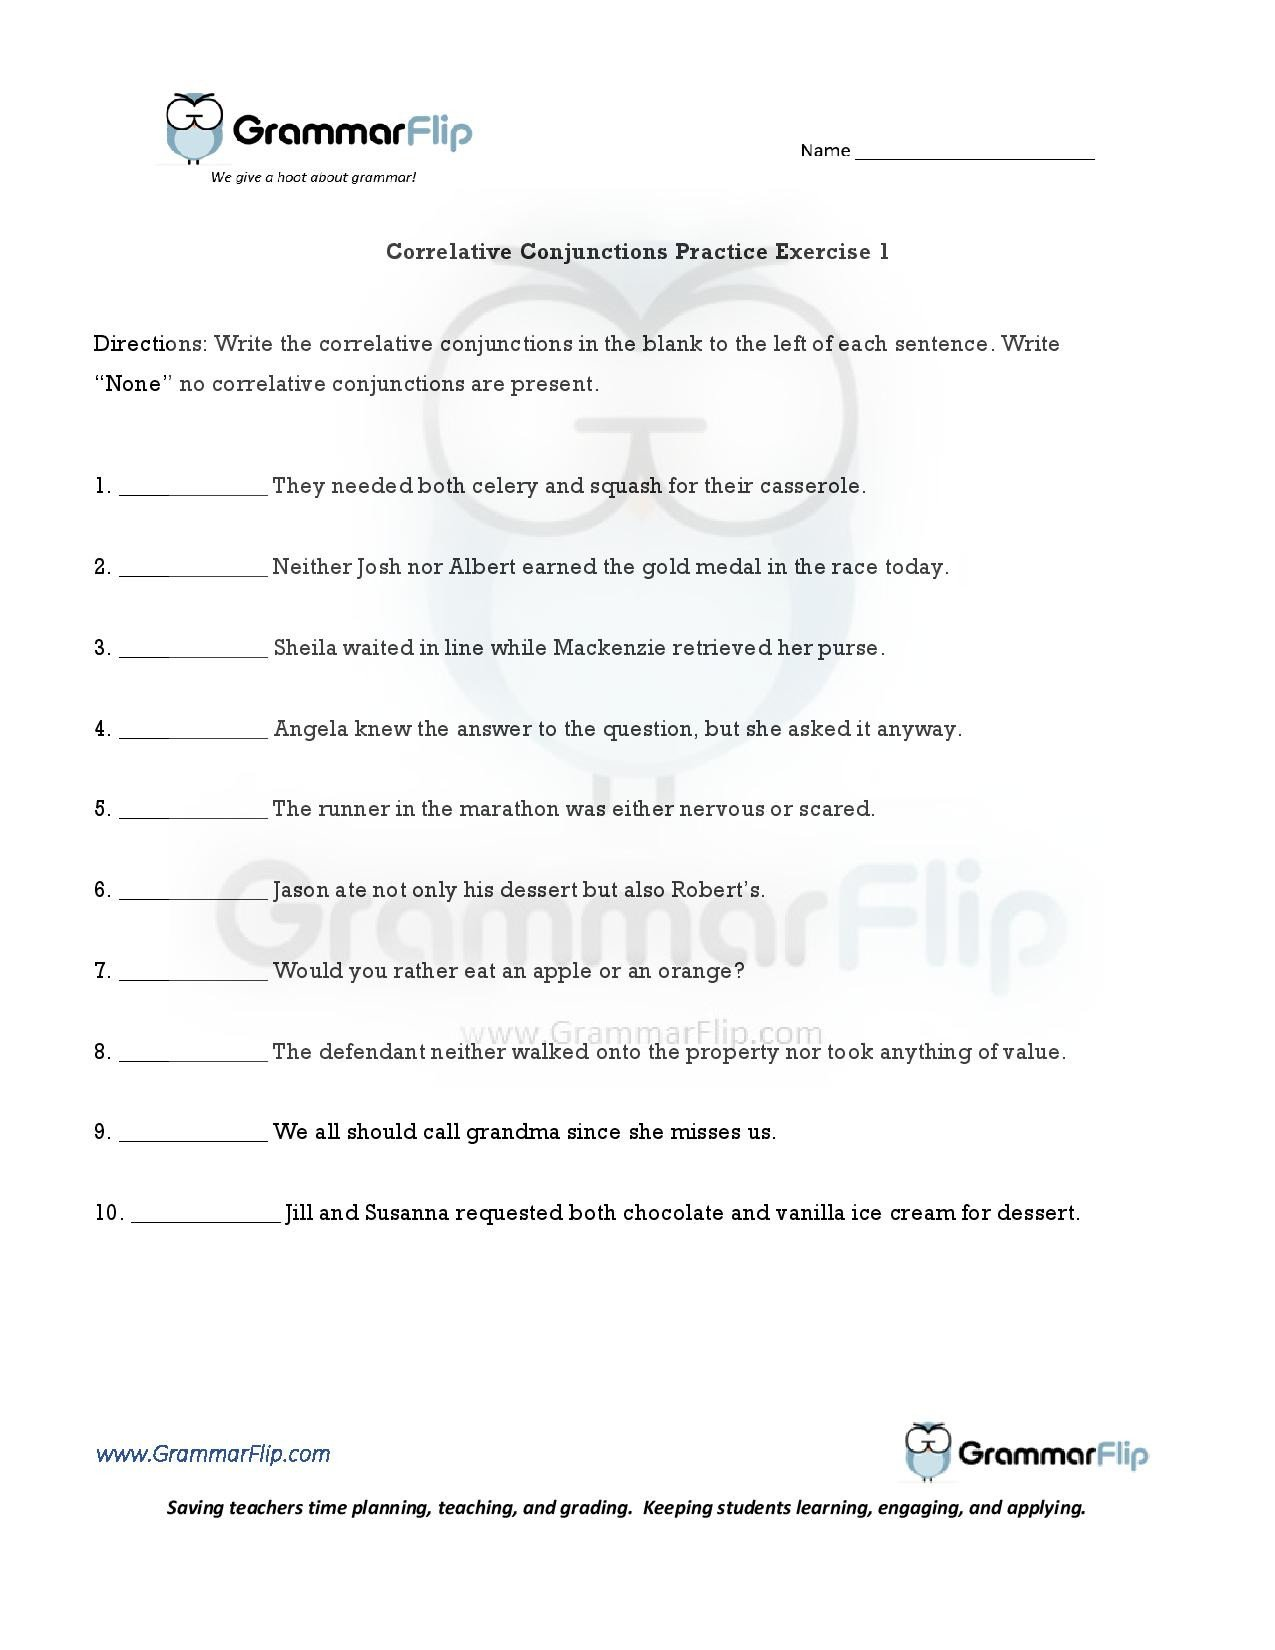 Correlative Conjunctions Worksheets with Answers Correlative Conjunctions